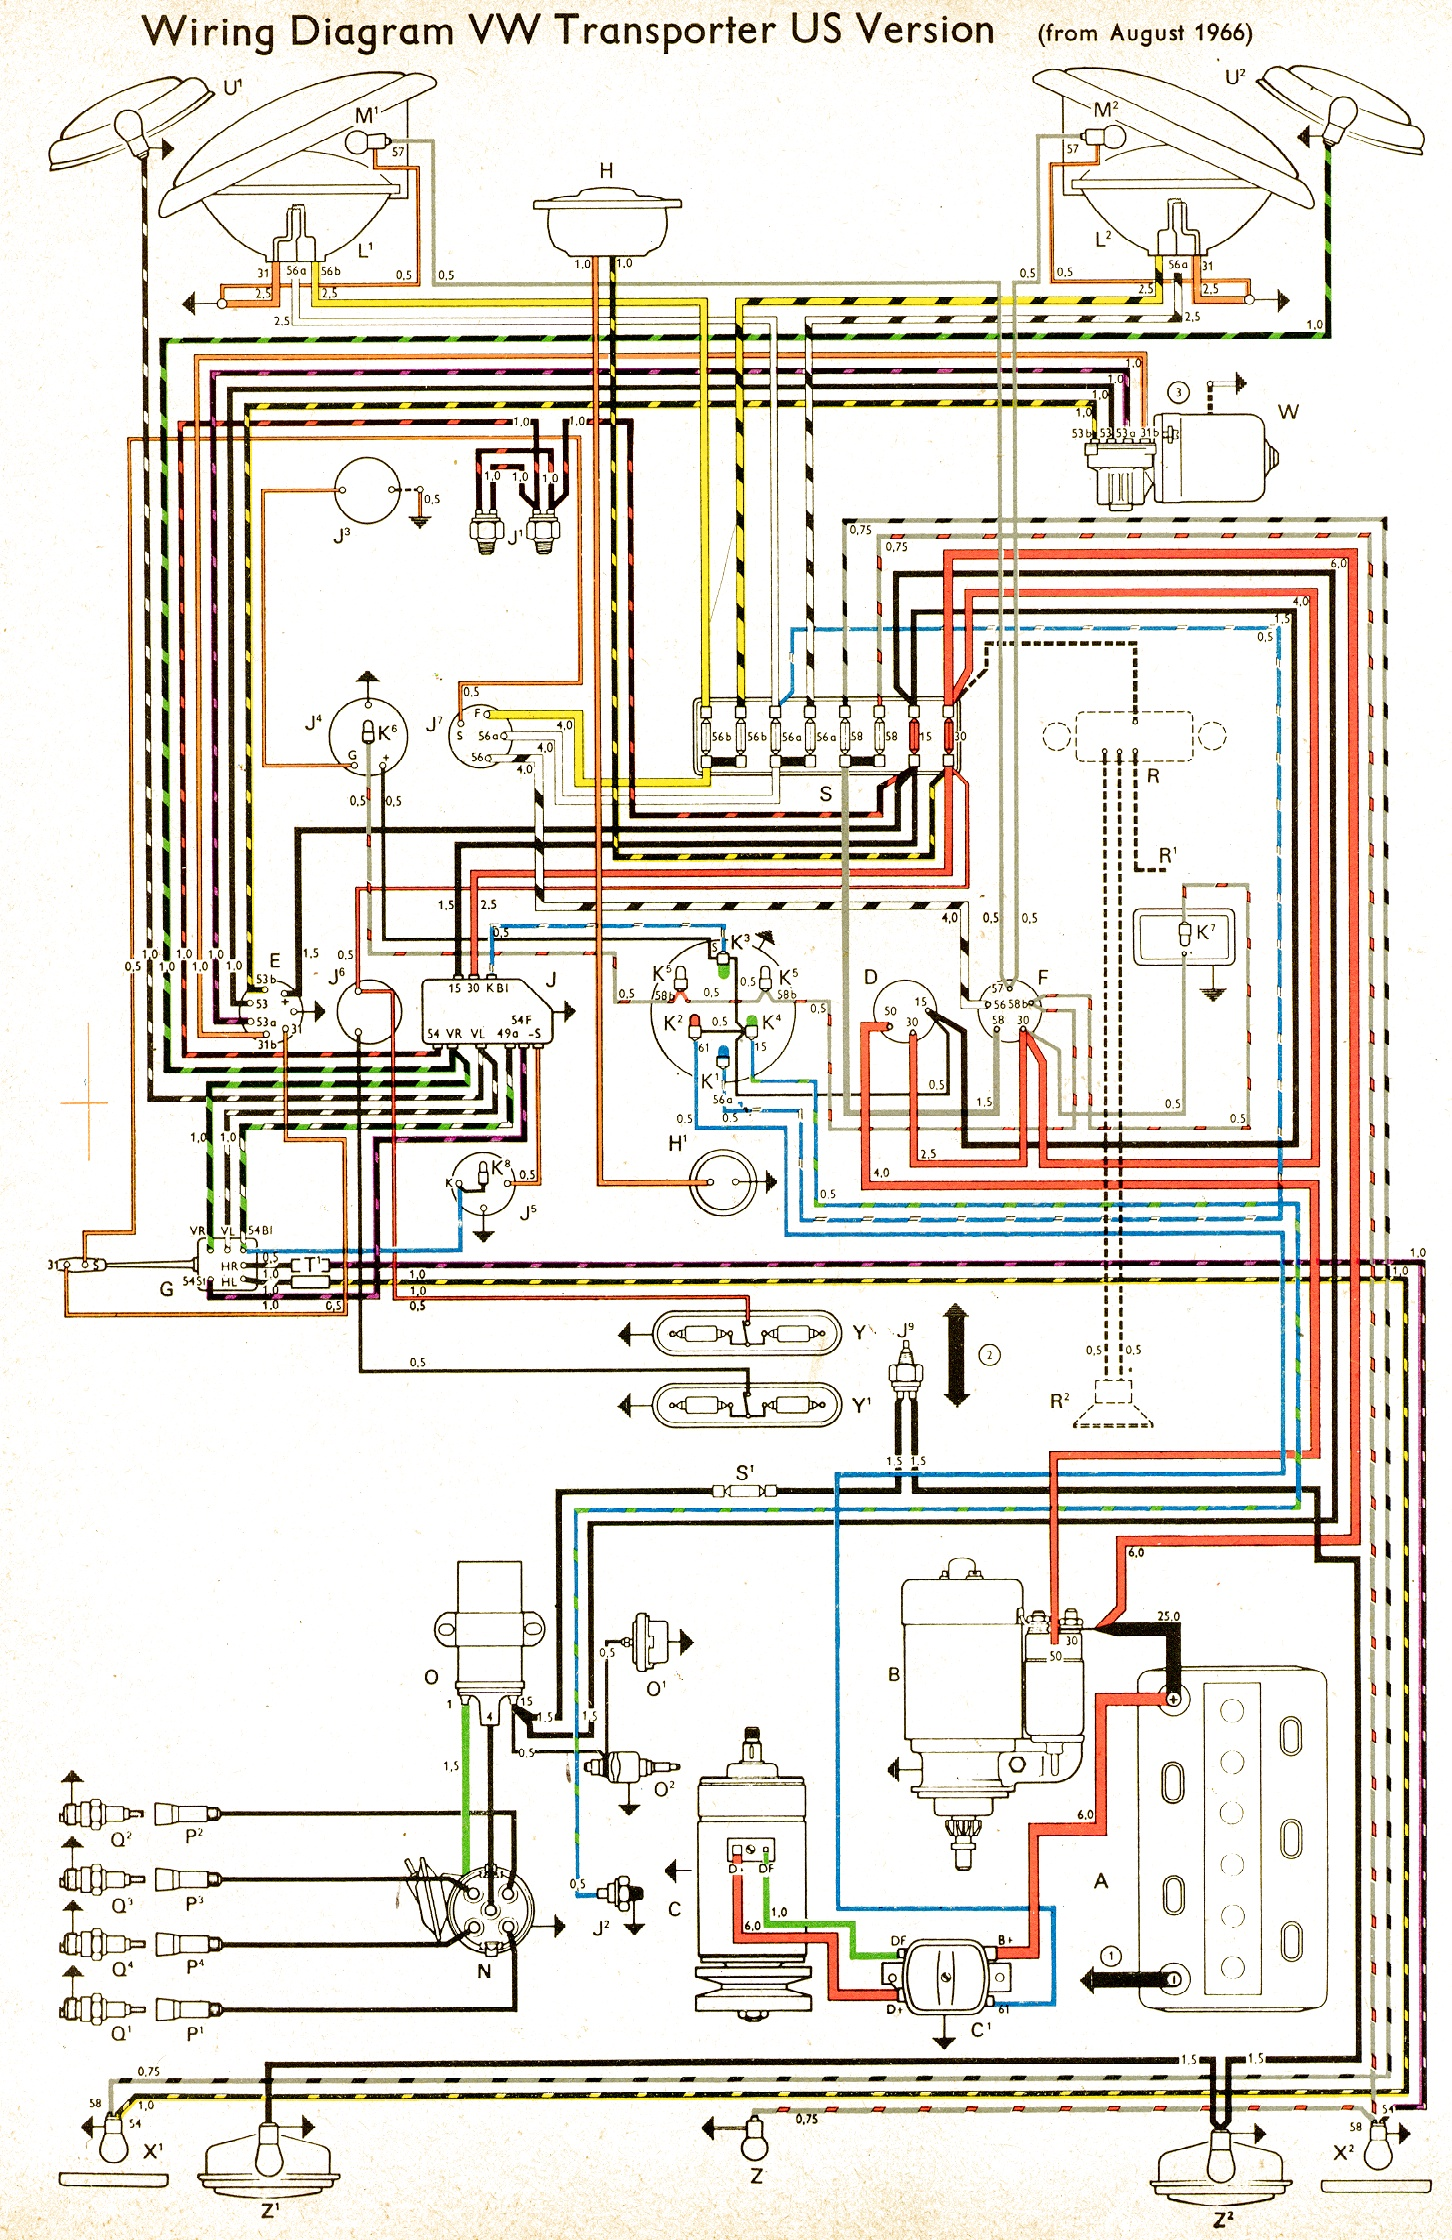 vw wiring diagrams rh volkspower nl vw wiring diagram 2003 jetta air  conditioning vw wiring diagram 1964